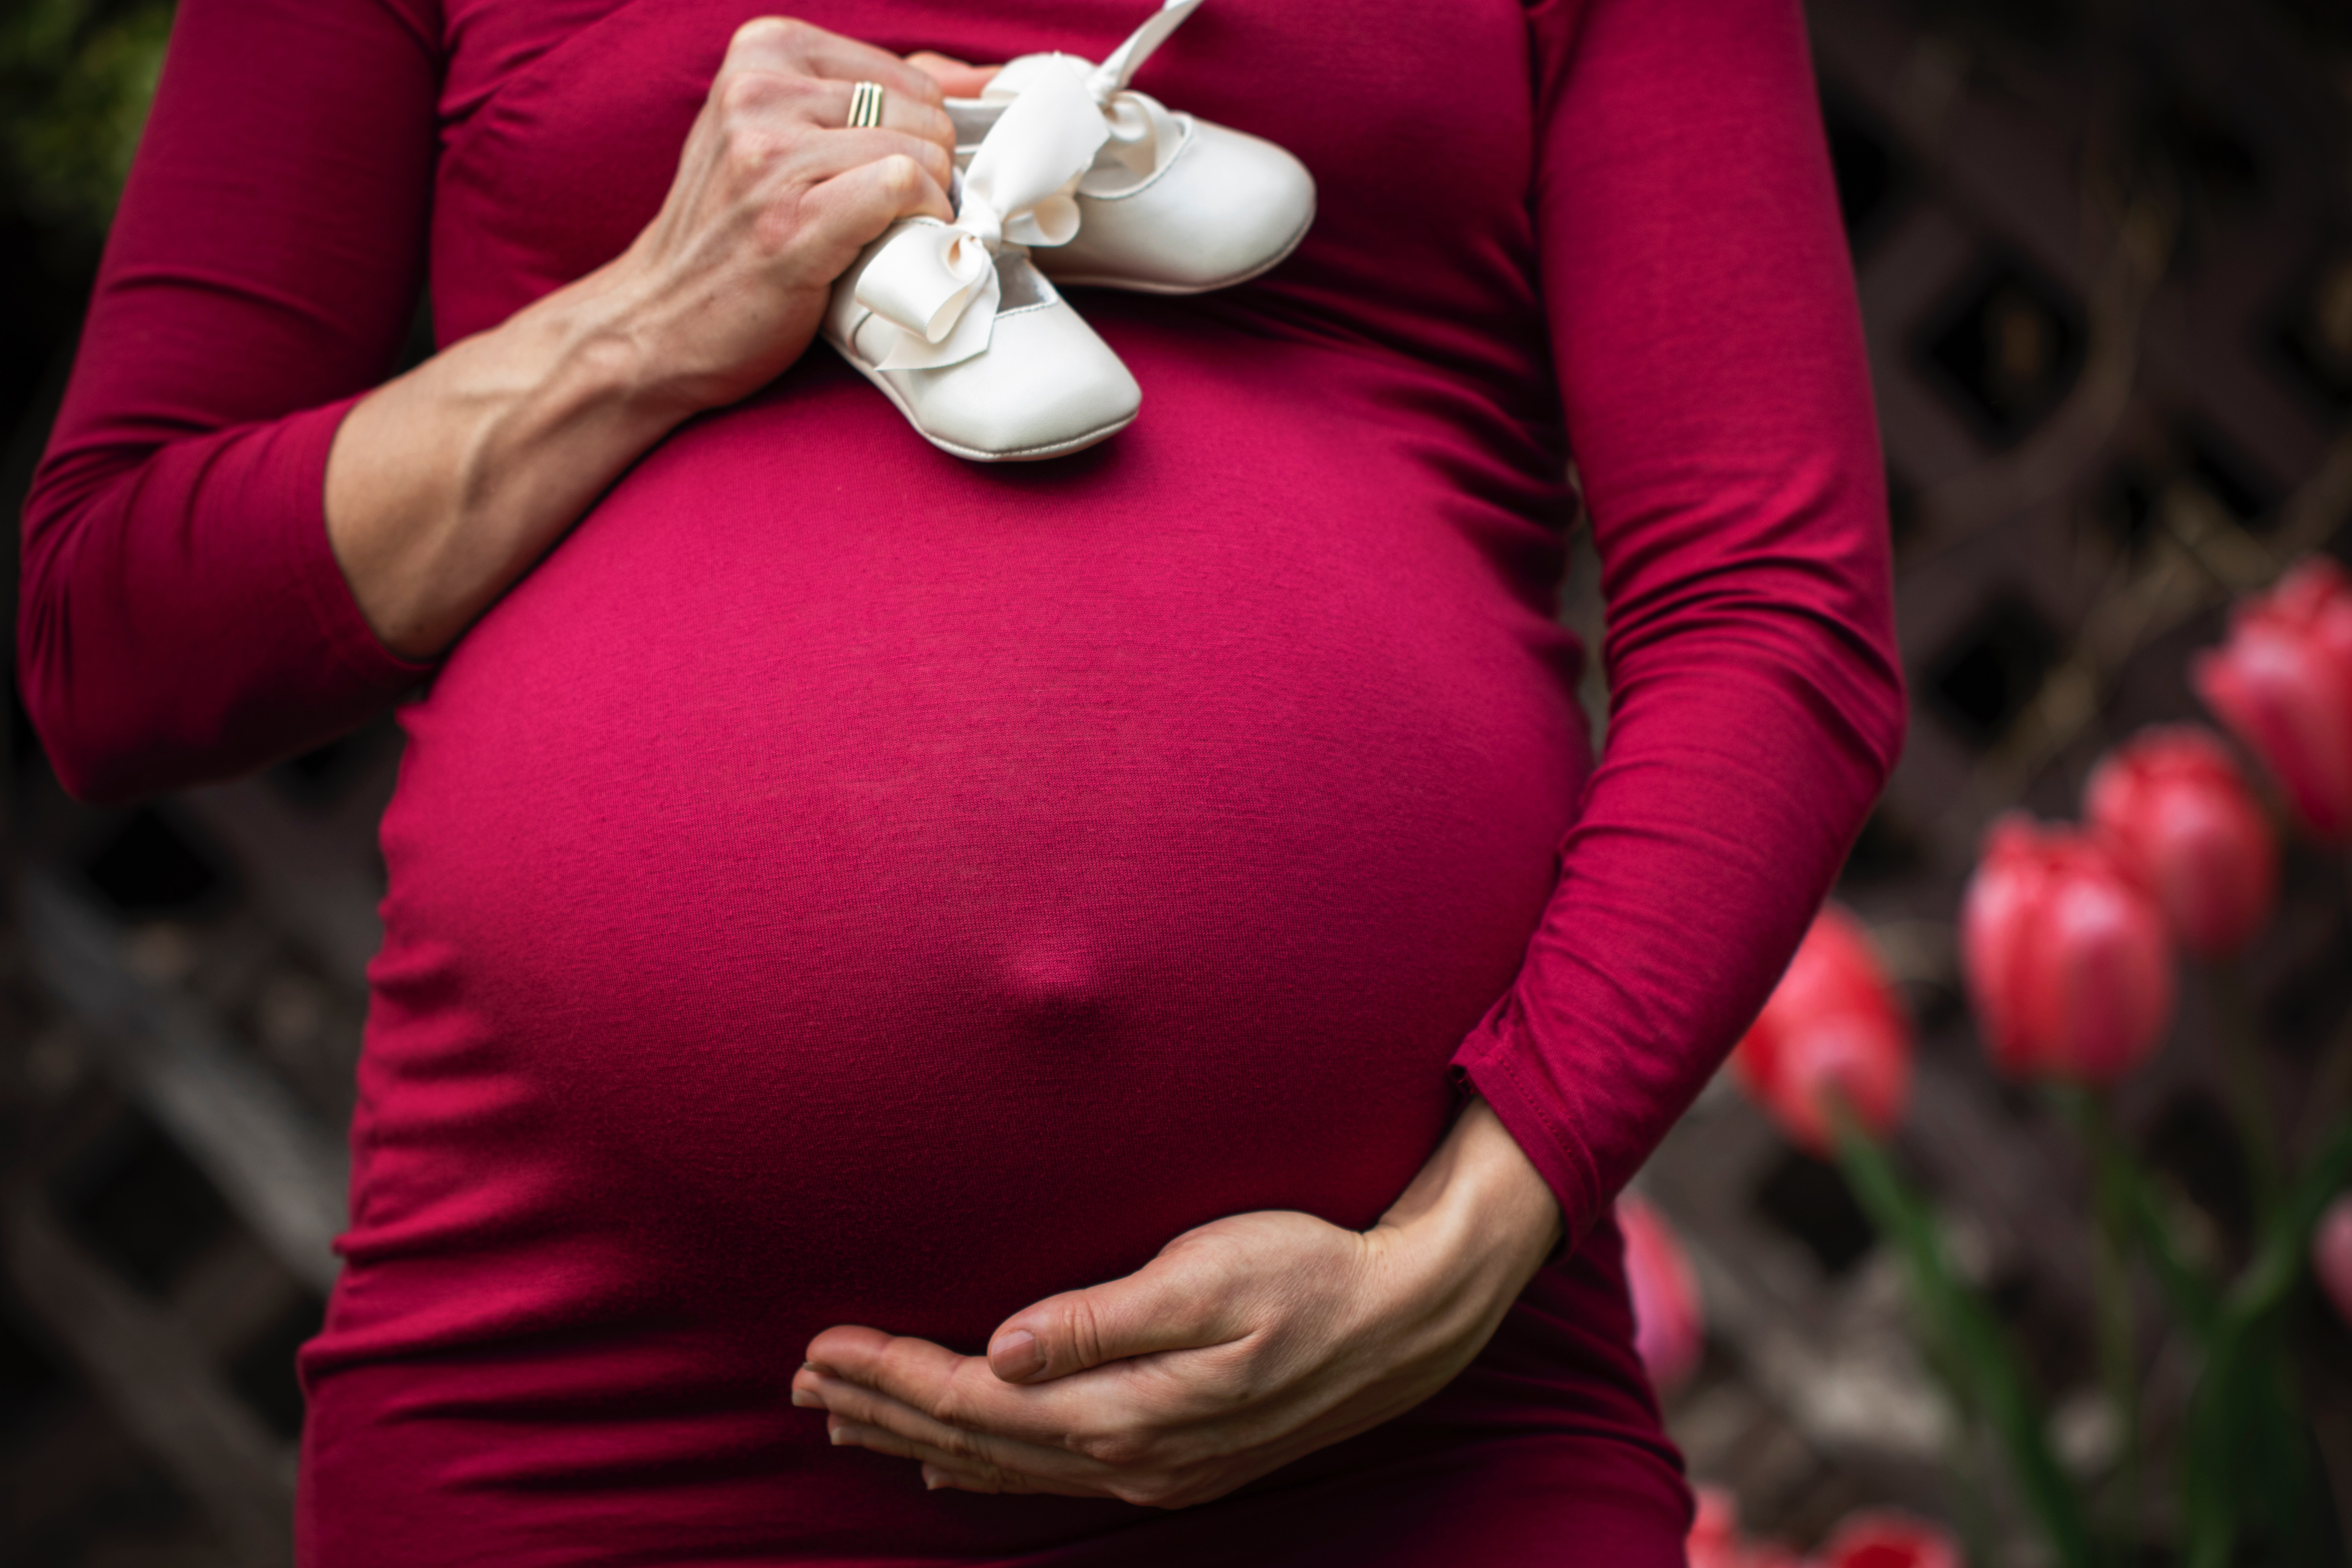 Could a supplement improve IVF success rates in older women?